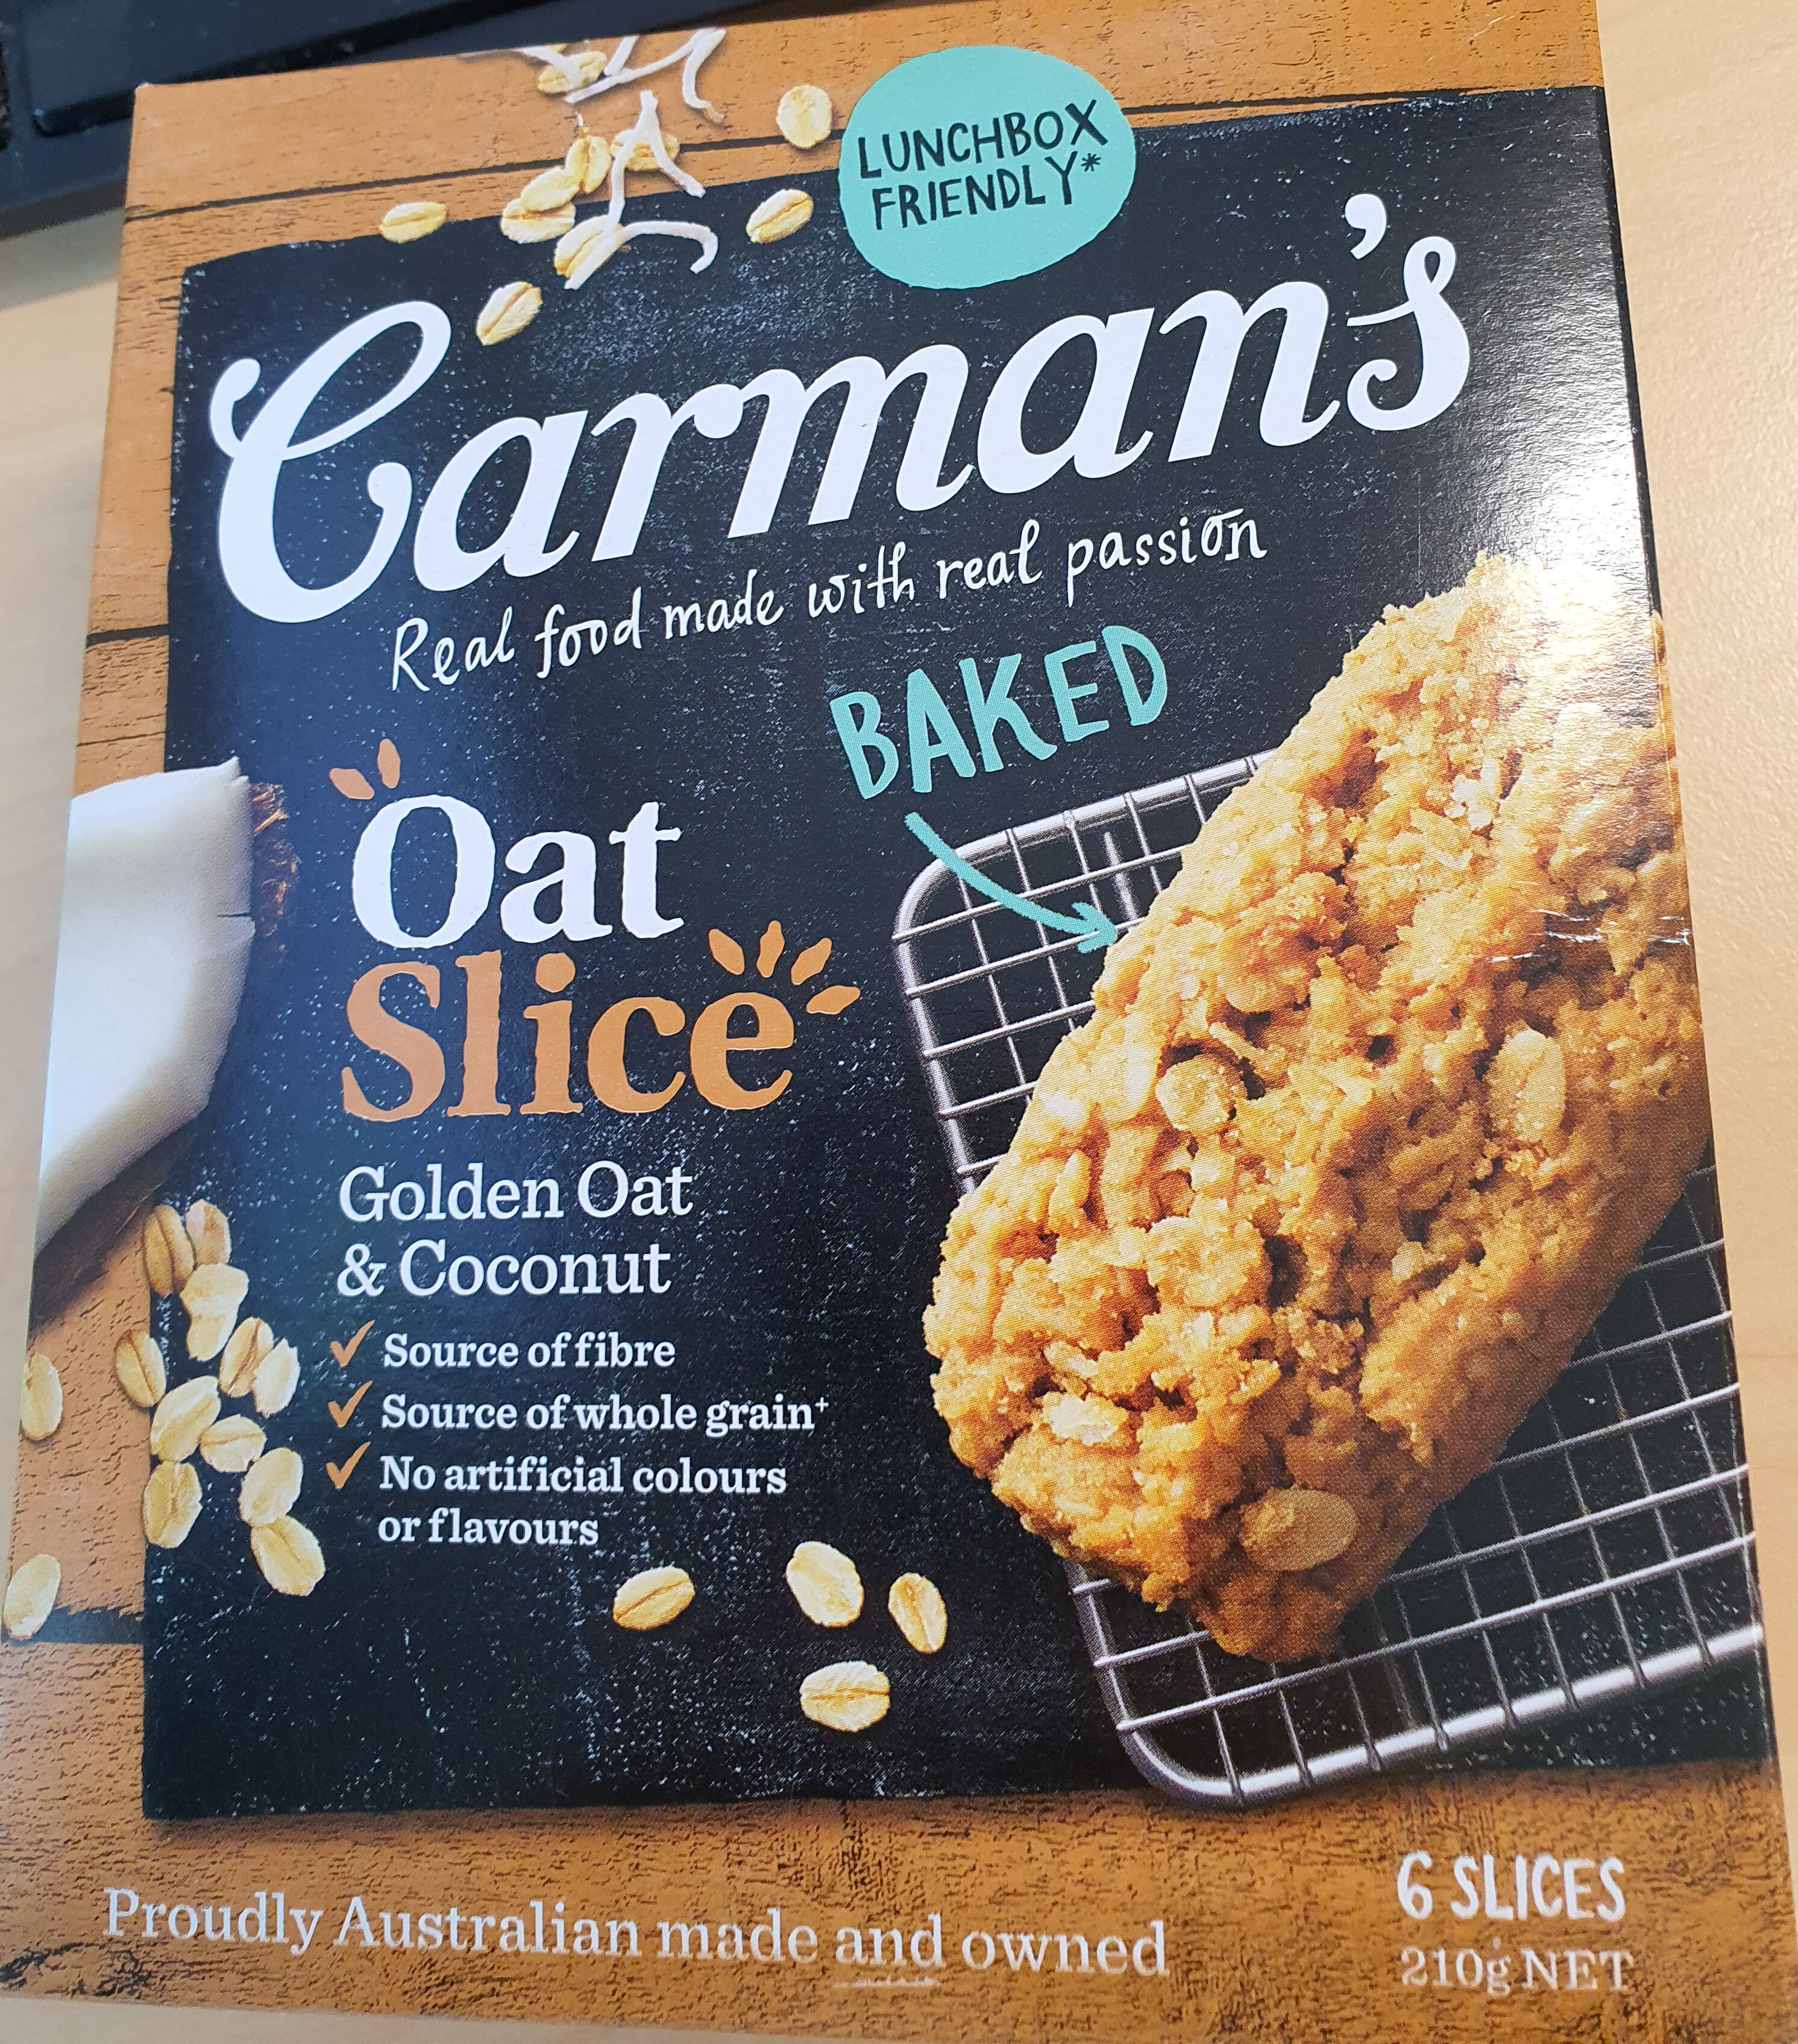 Oat Slice - Golden Oat and Coconut - Product - en